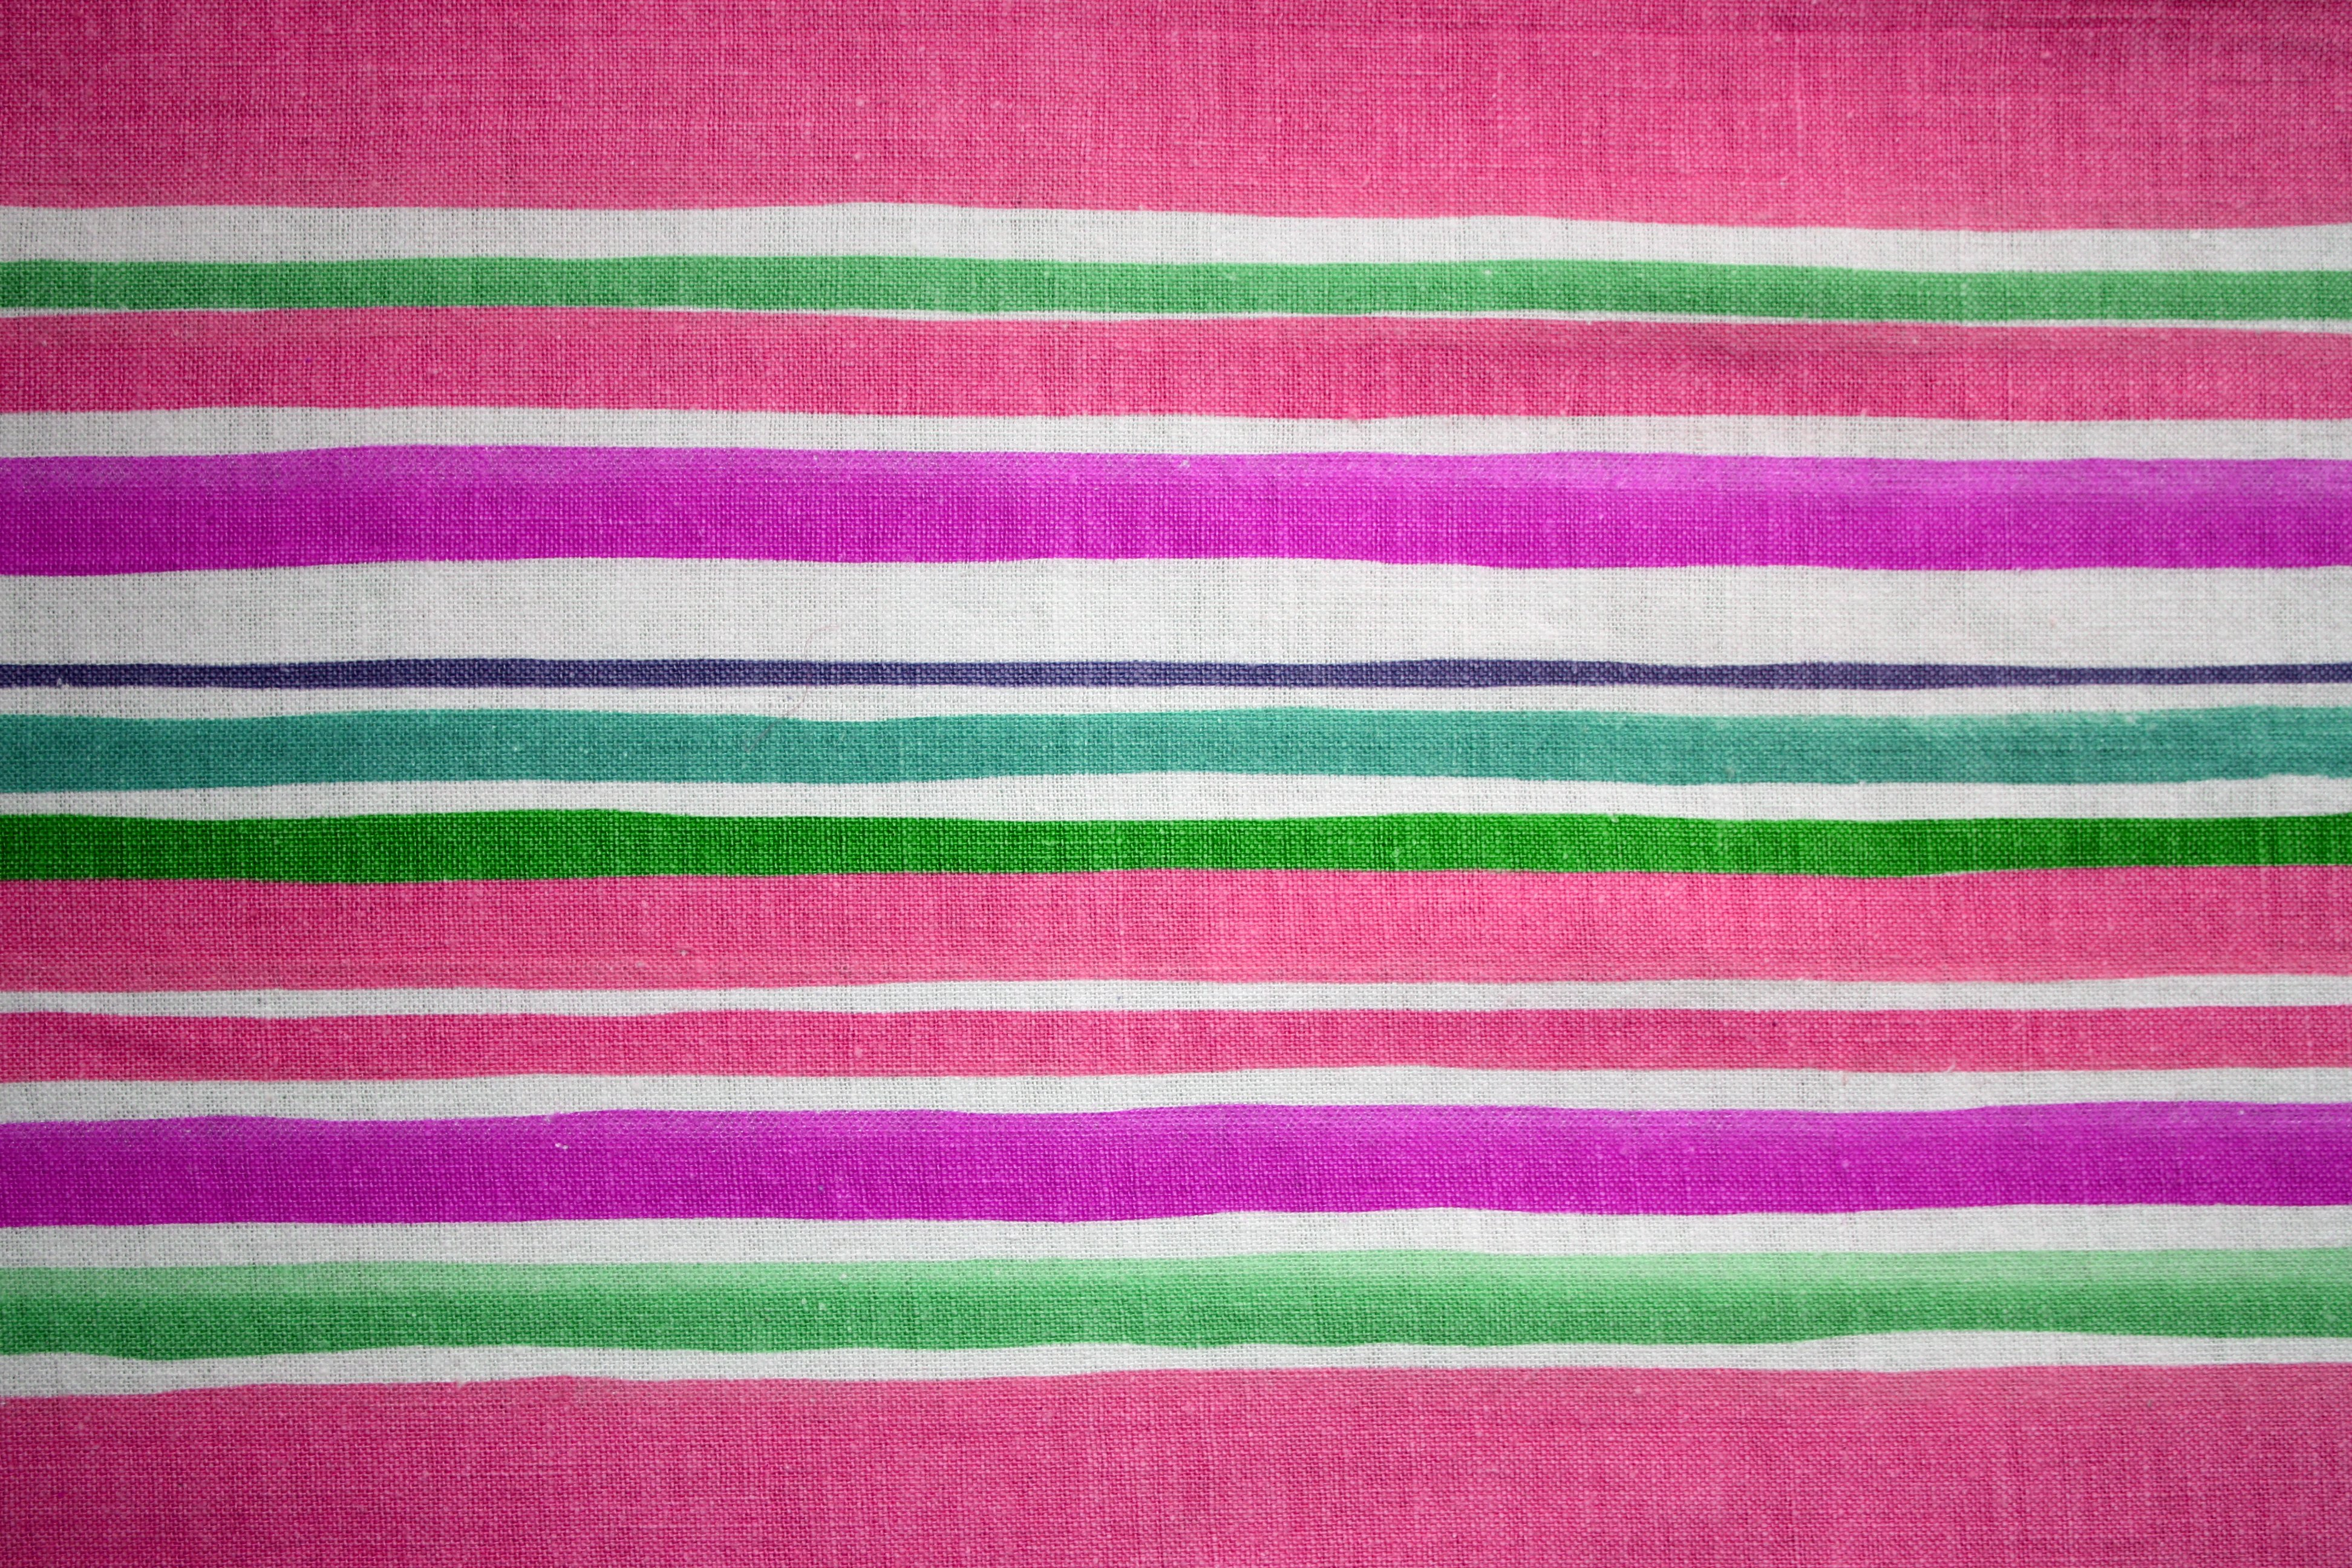 Striped Fabric Texture Pink and Green Picture | Free ...